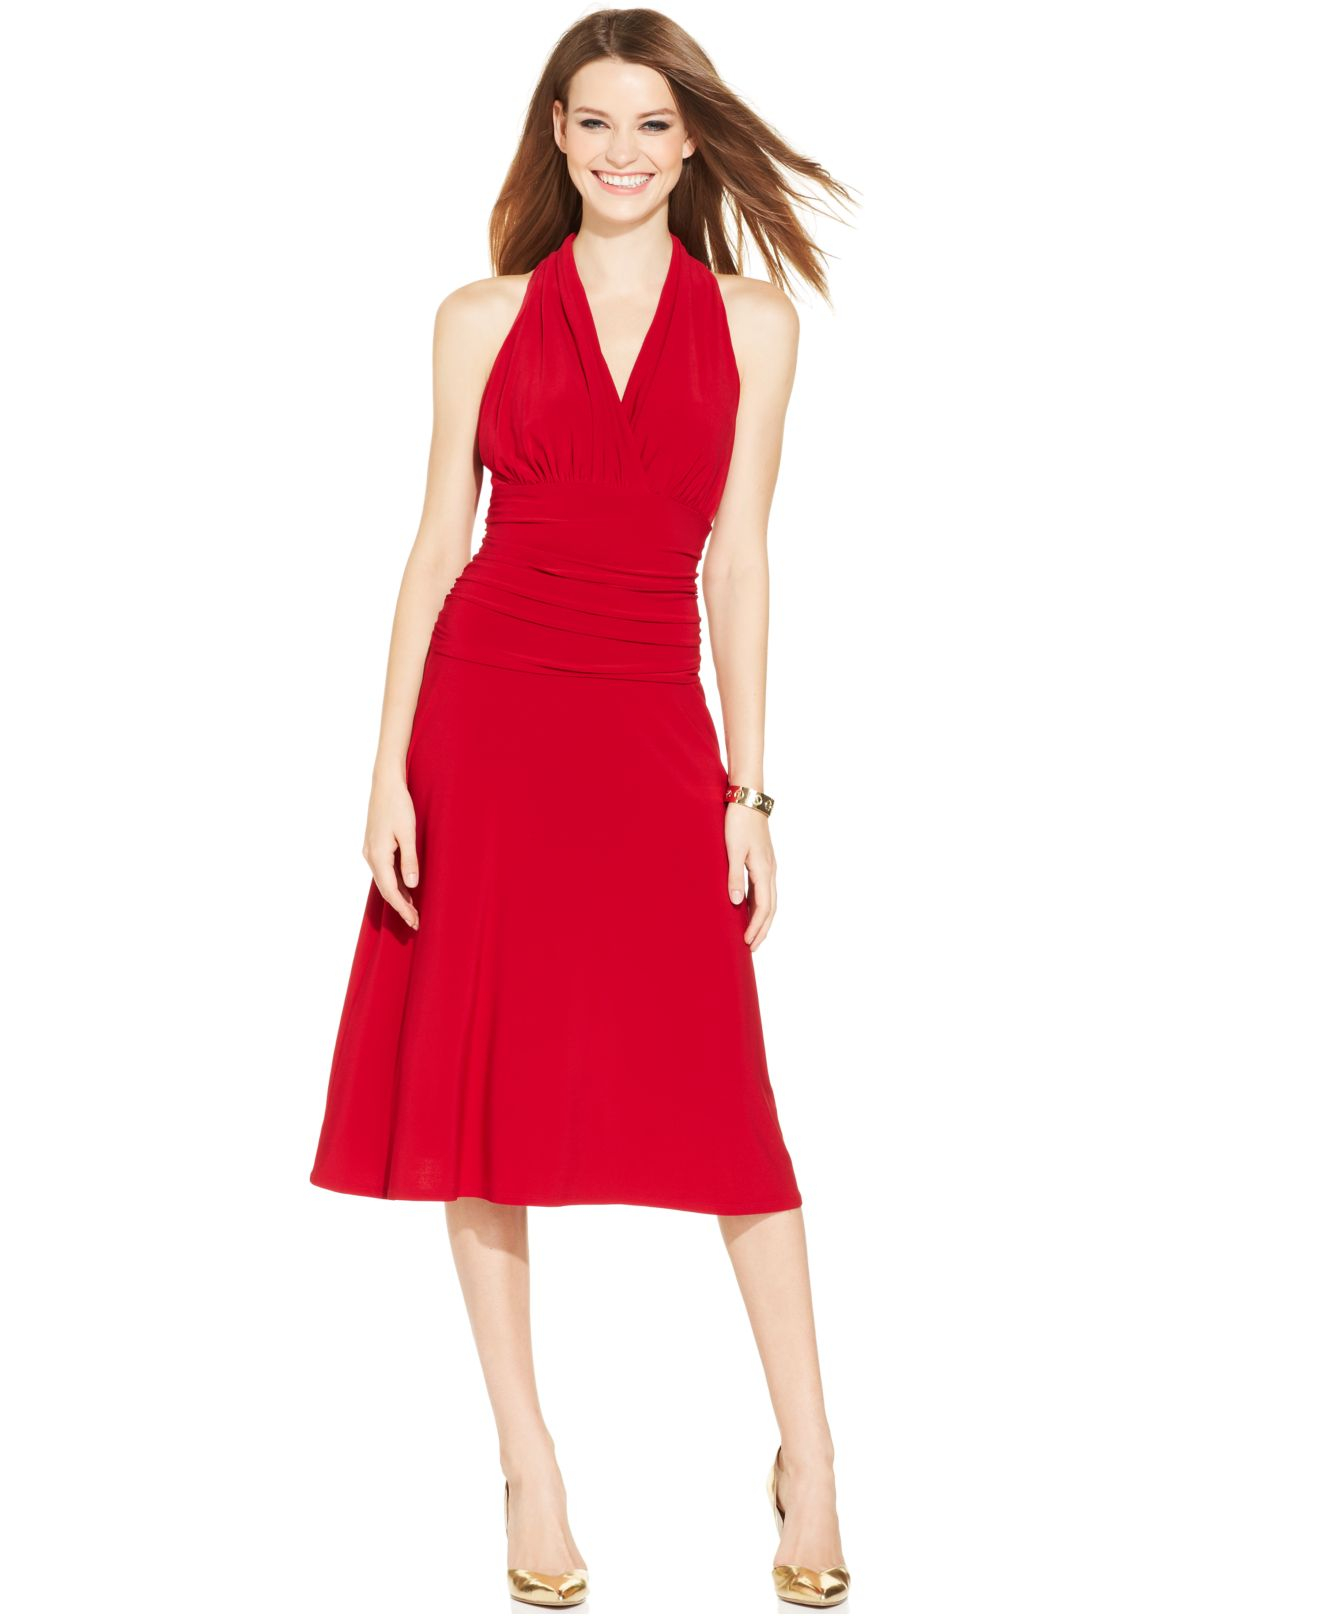 Nine west Sleeveless Ruched Halter Dress in Red - Lyst